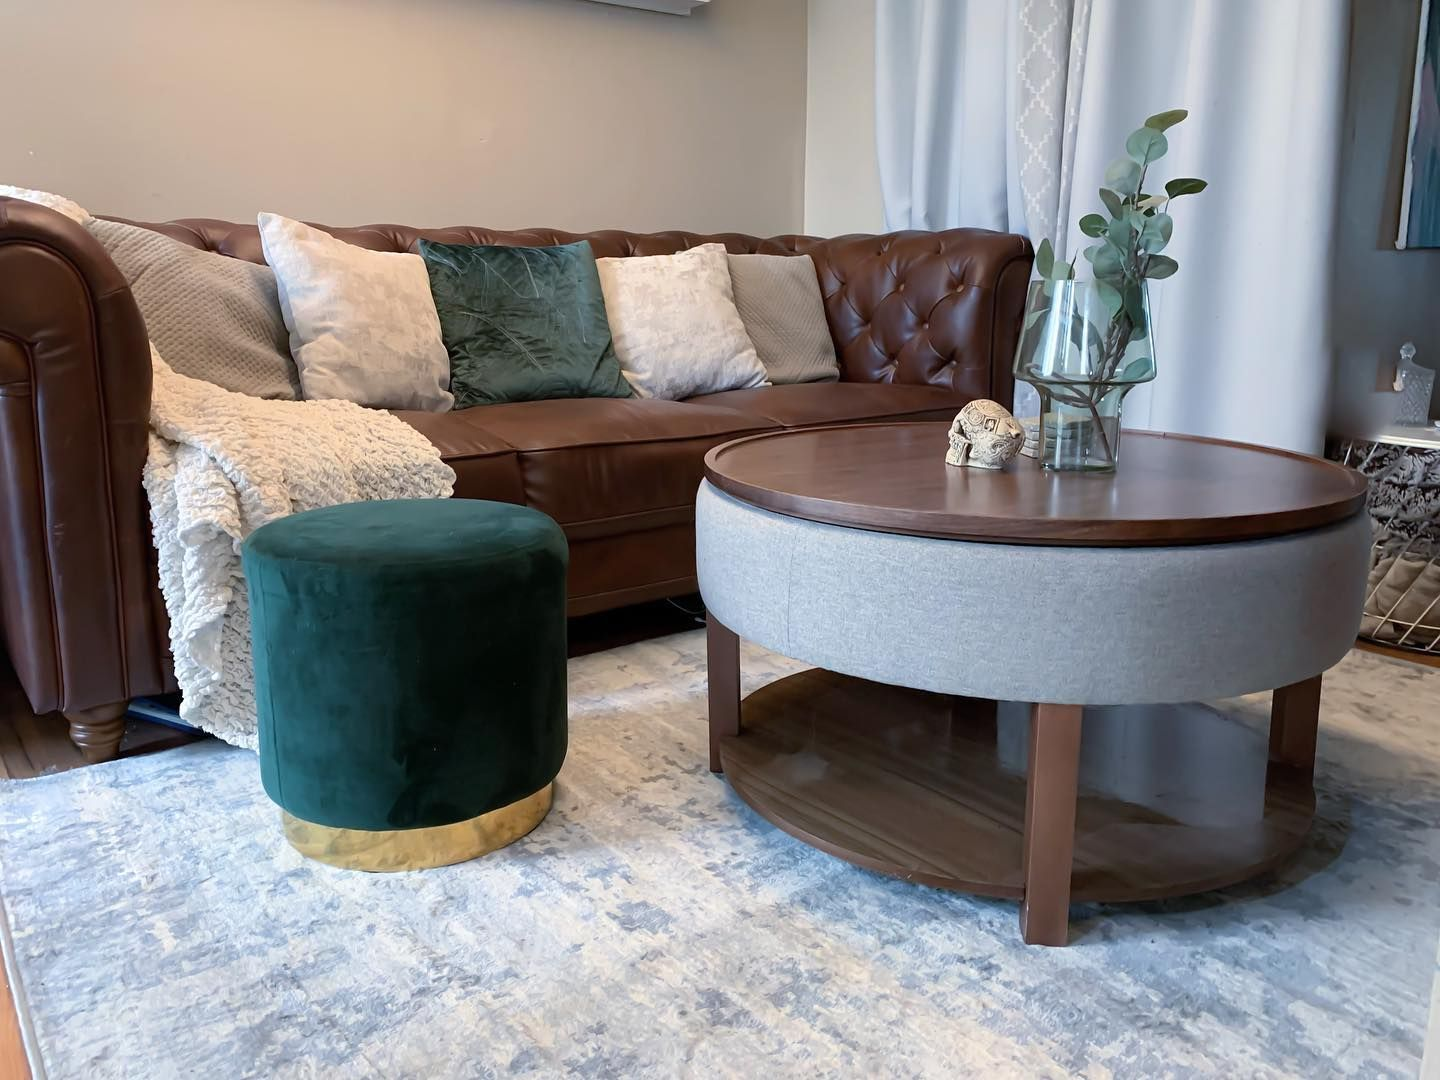 Pin By A Oahz On New In 2021 Coffee Table Coffee Table With Storage Wood Veneer [ 1080 x 1440 Pixel ]